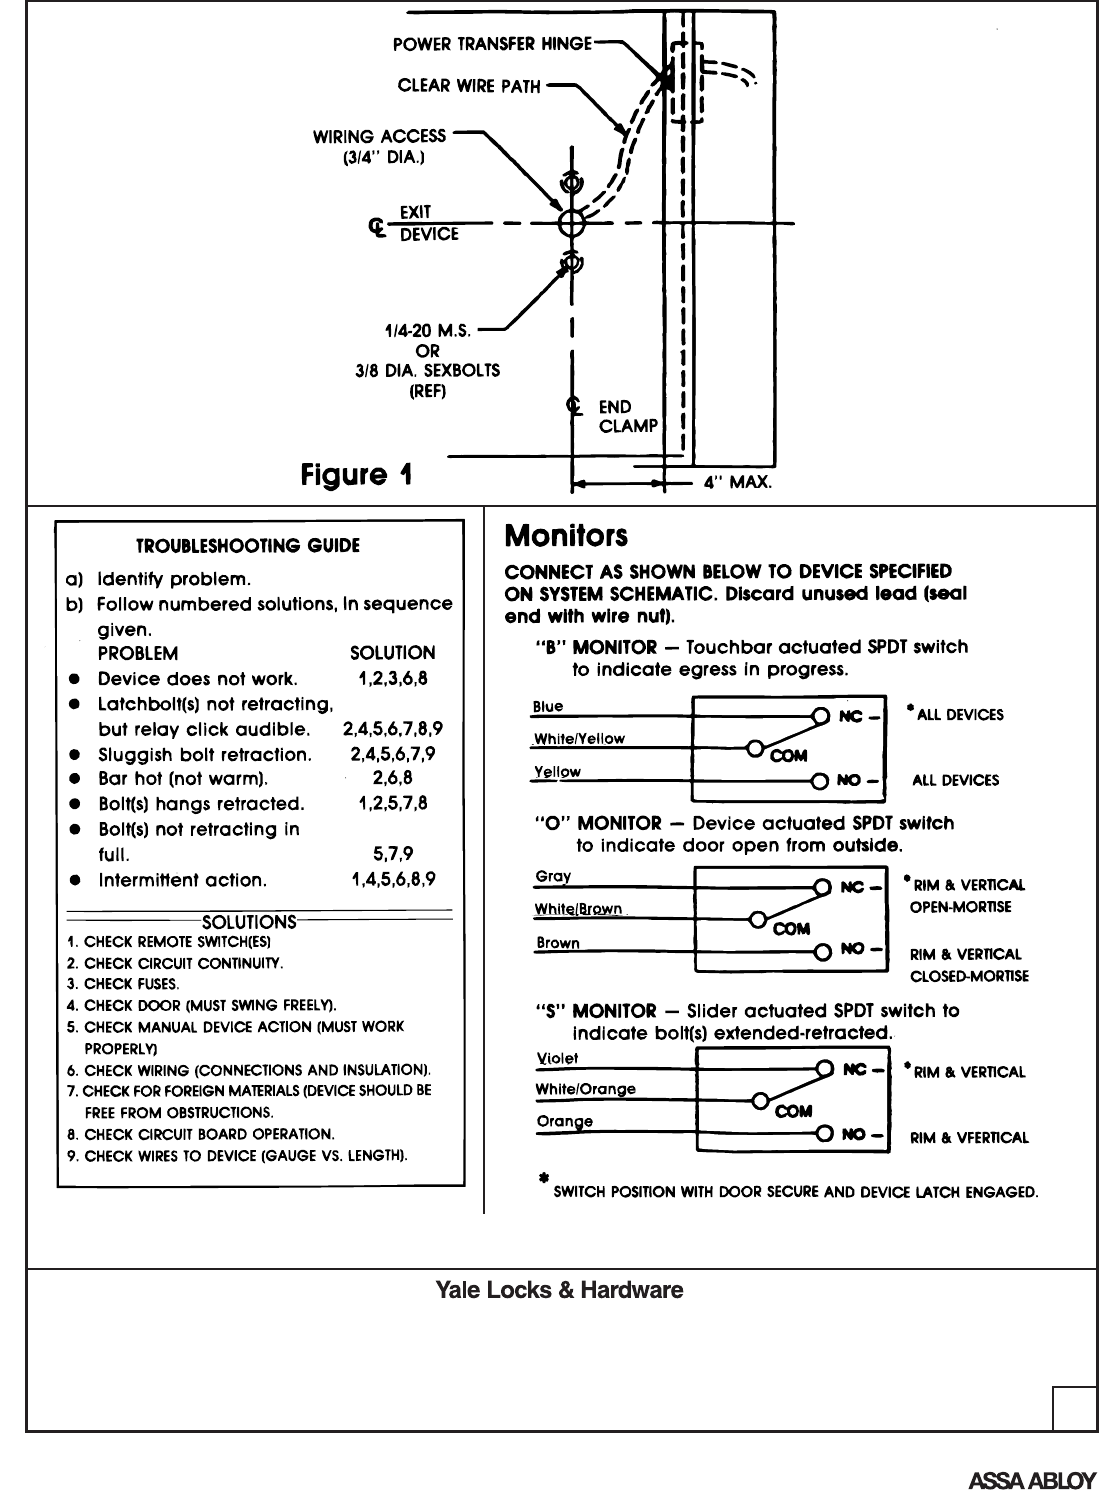 hight resolution of yale 80 9477 0781 001 01 13 exit devices with electric latch electric latch retraction wiring diagram